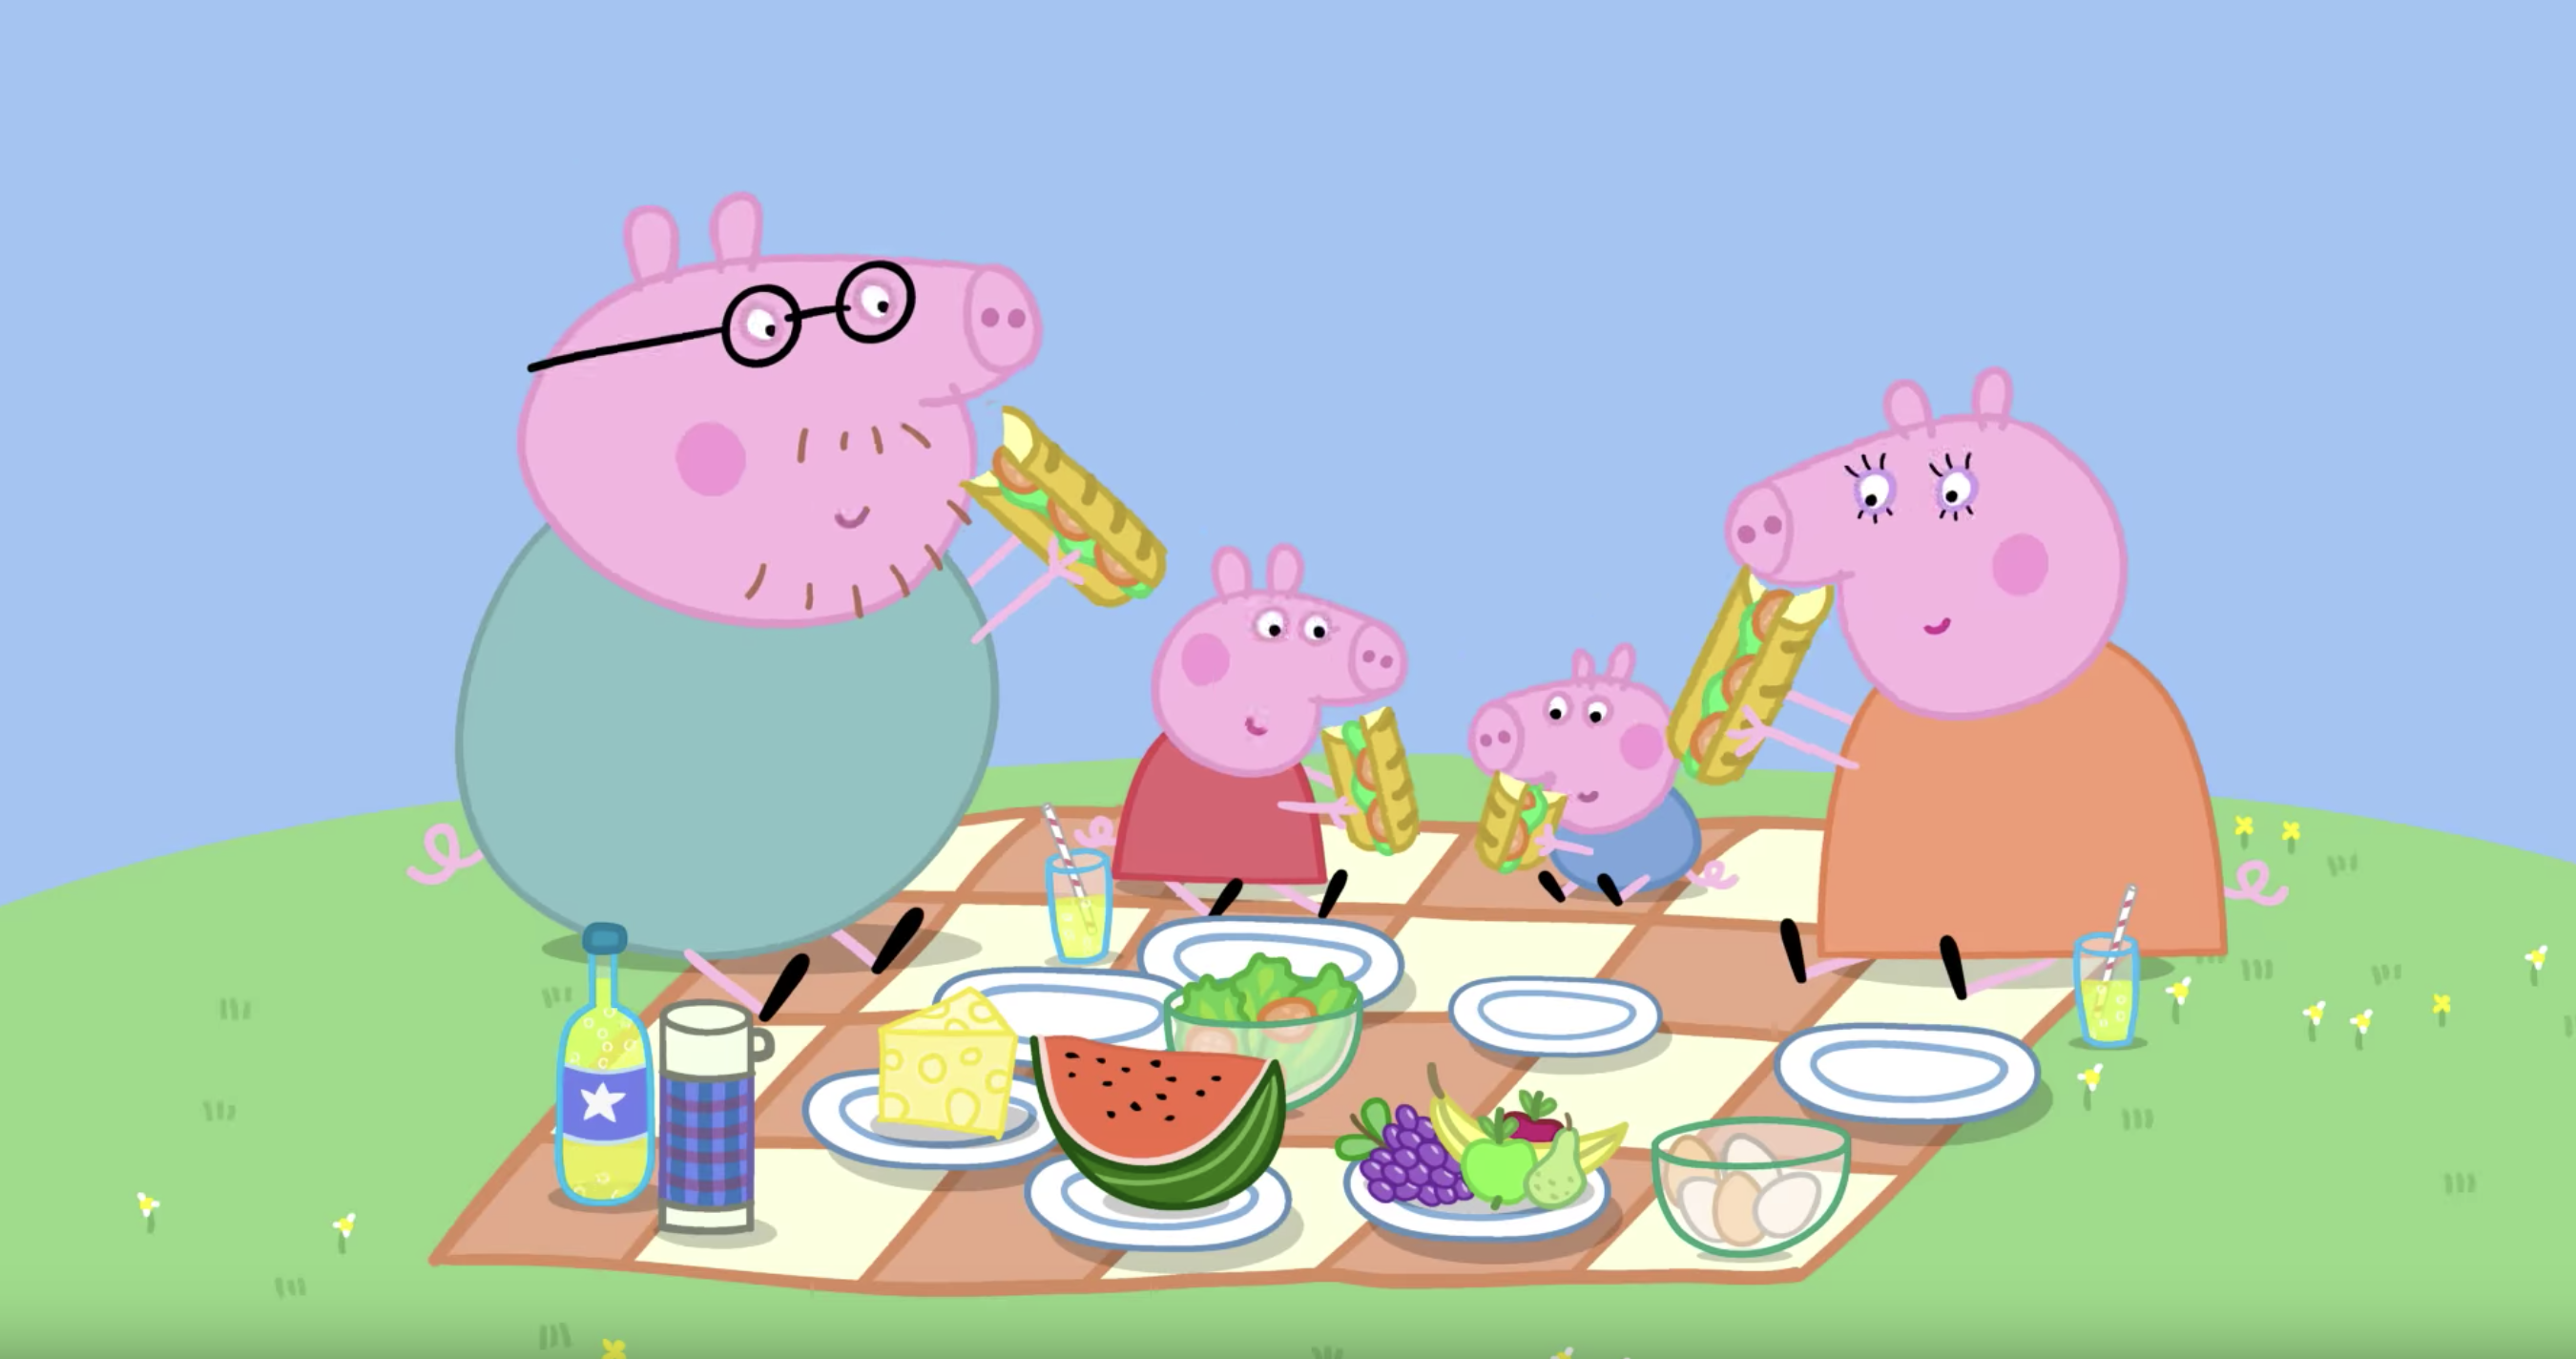 Is Peppa Pig too gangster? We've conducted a thorough